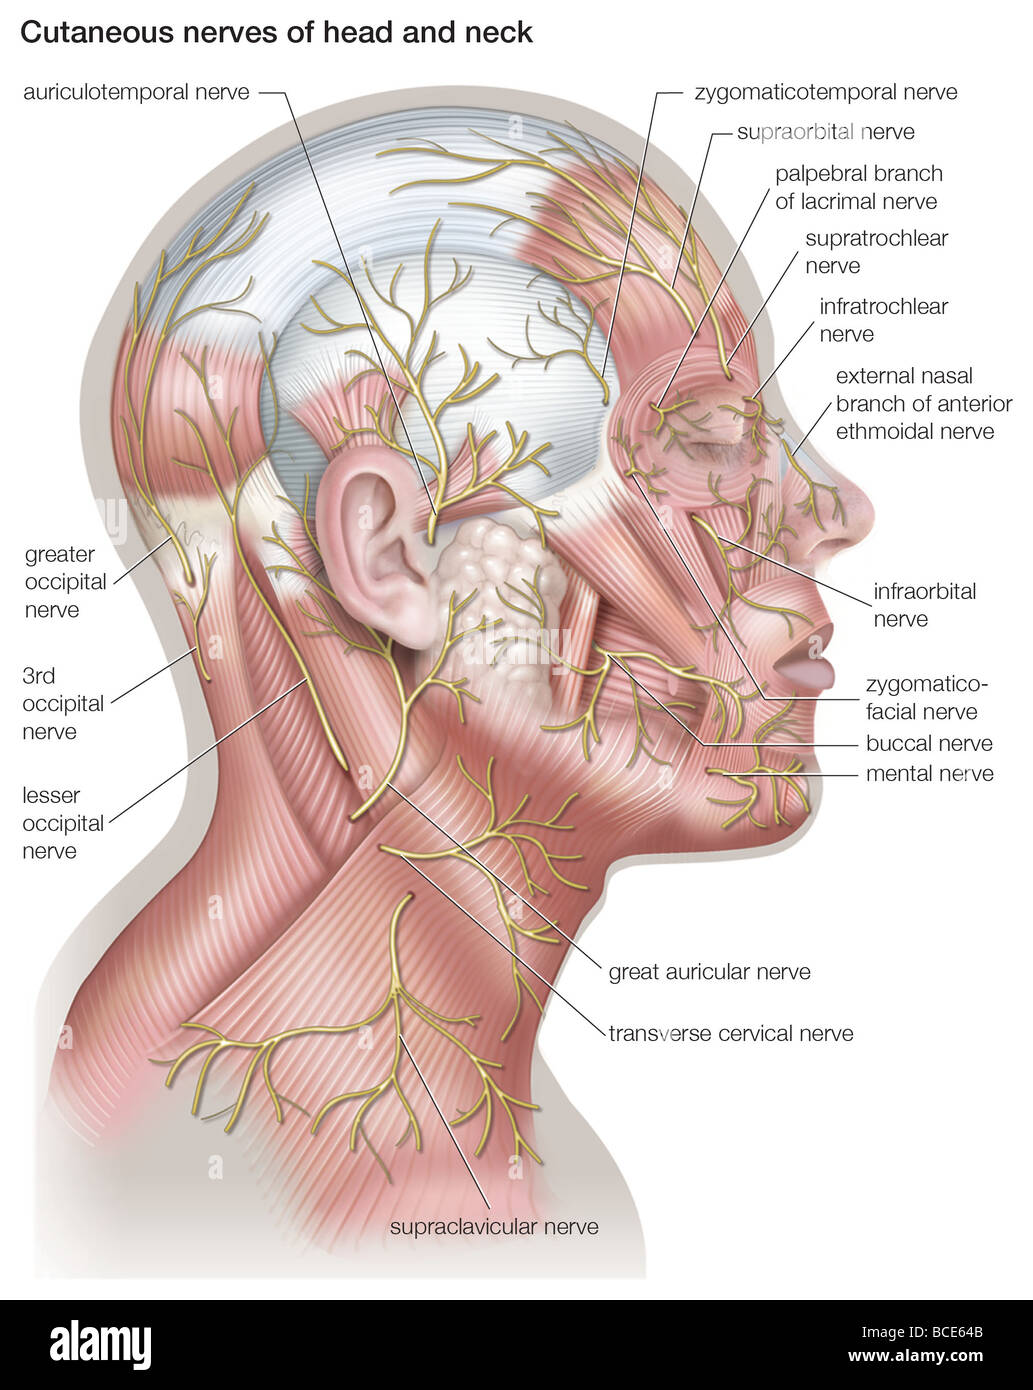 Diagram of the cutaneous nerves of the head and neck Stock Photo ...